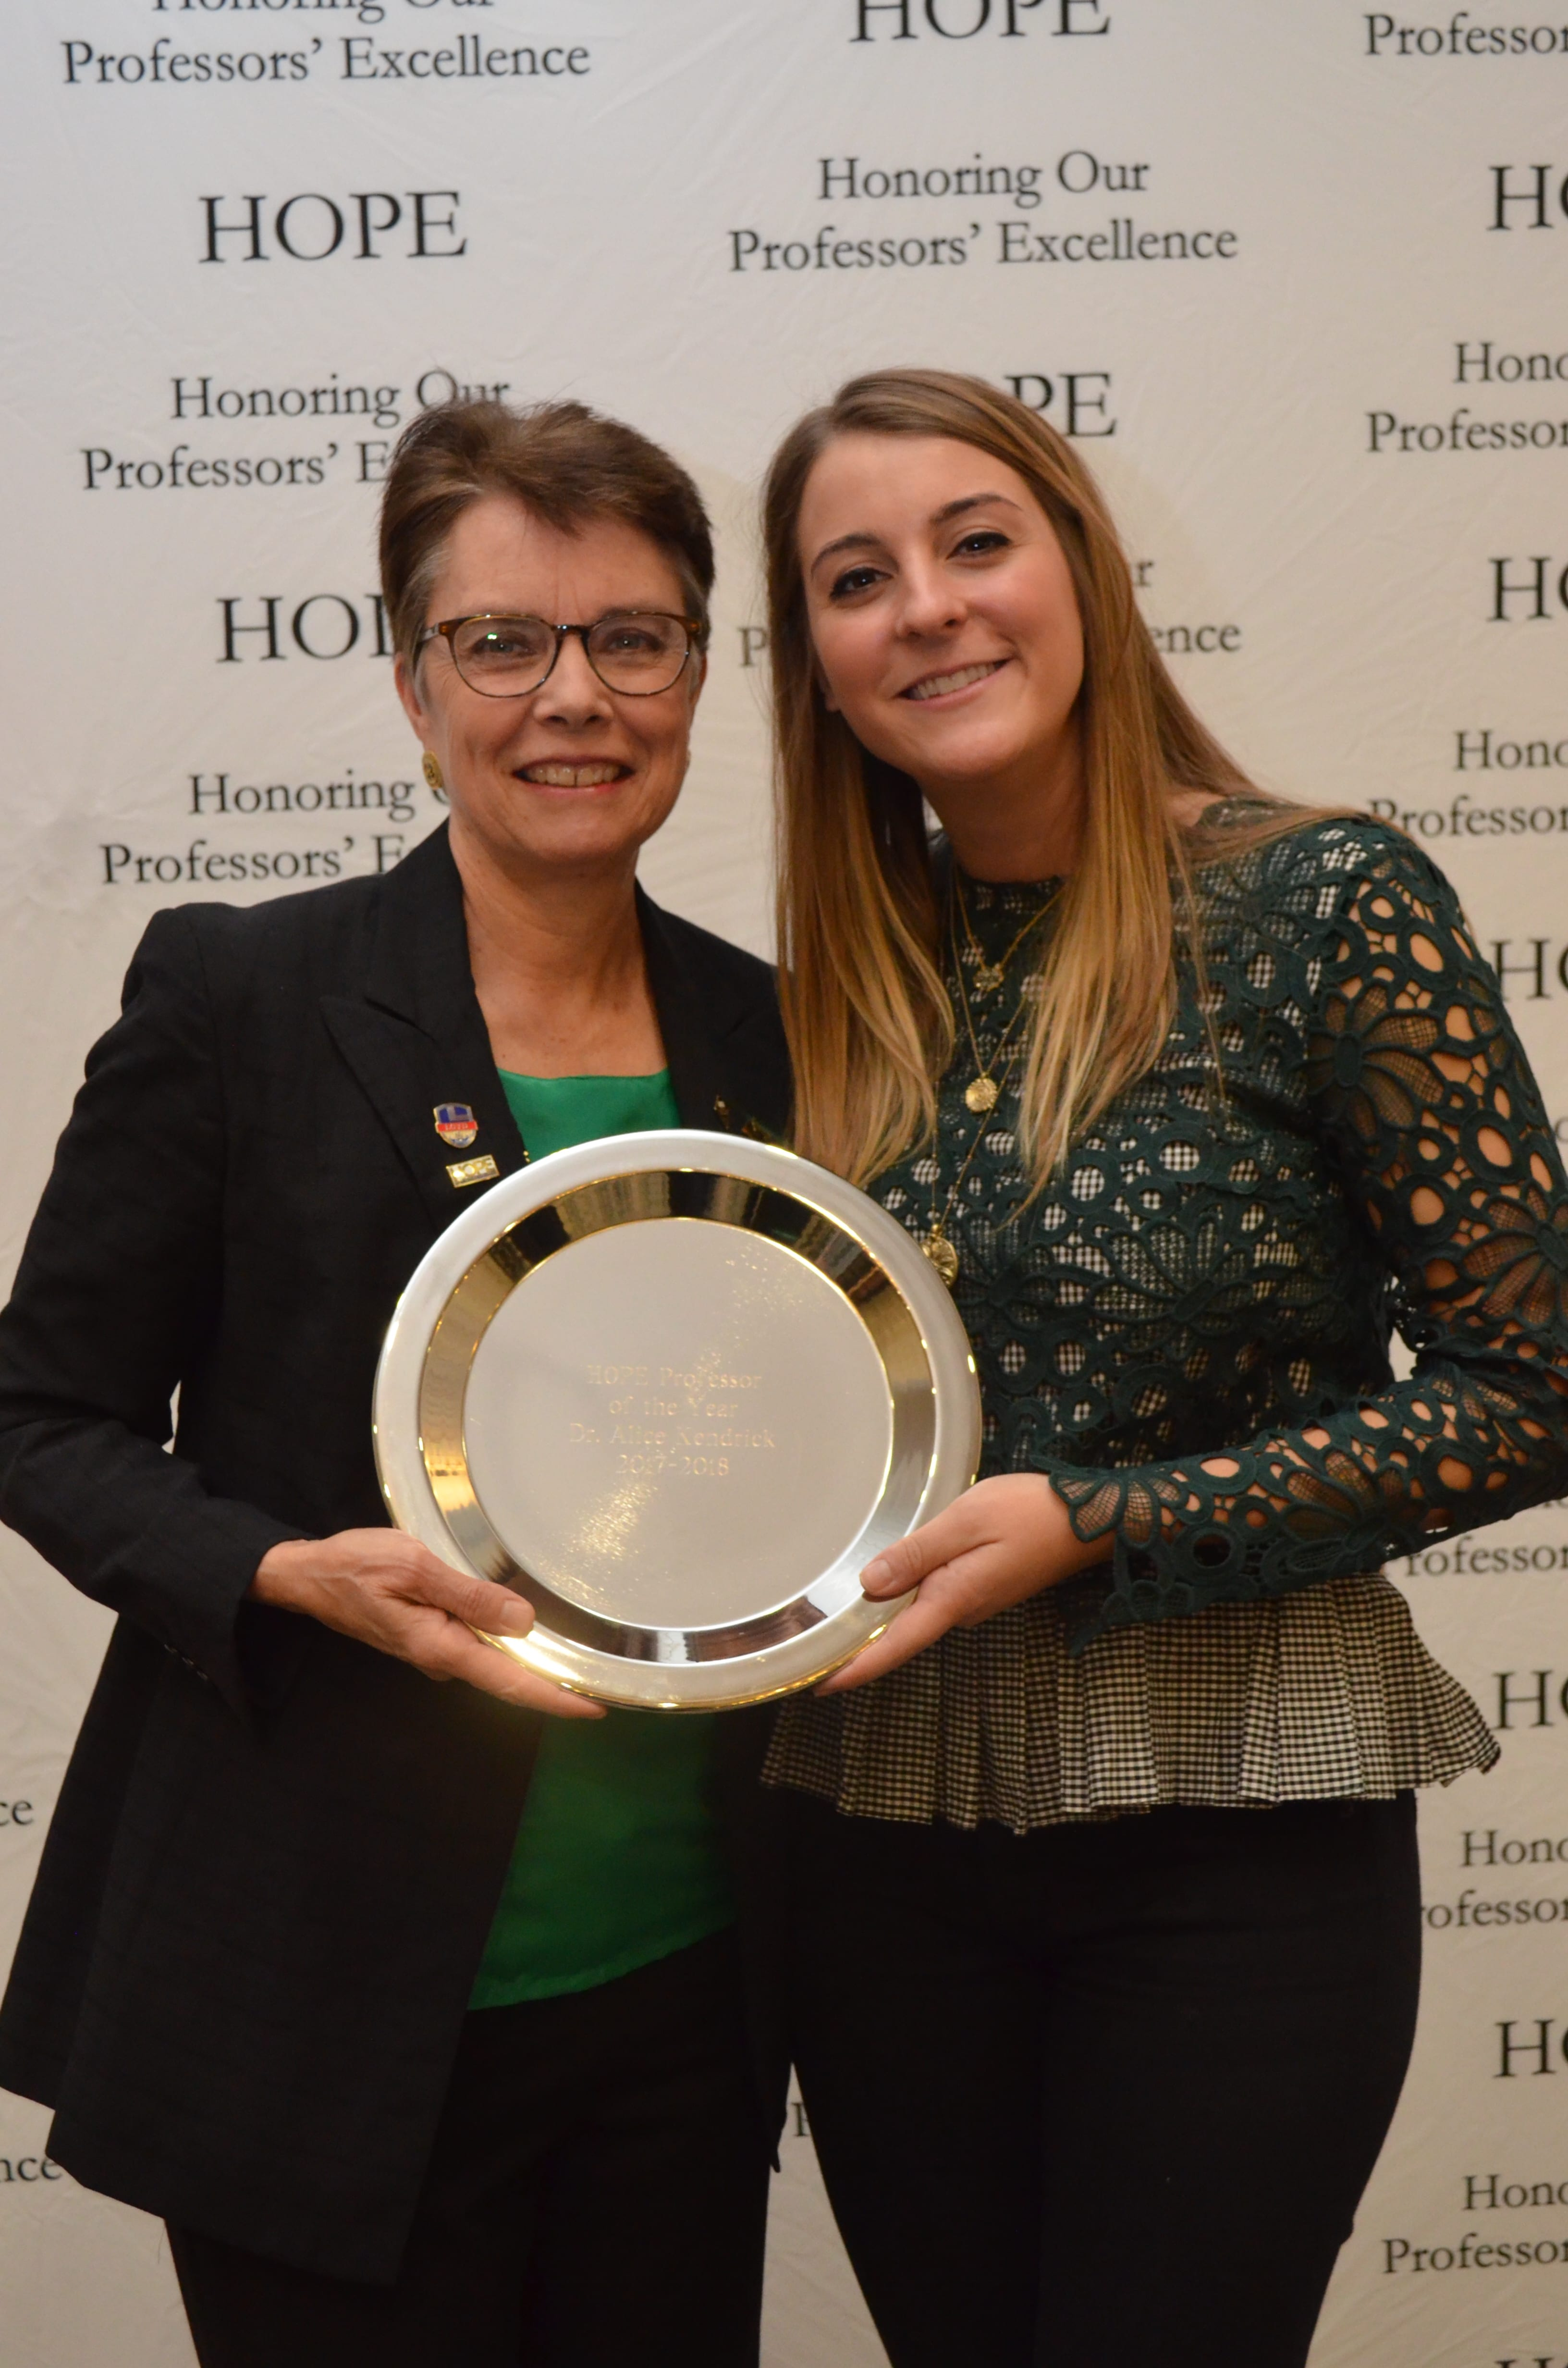 Alice Kendrick and Tiffany Giraudon, HOPE Awards 2018